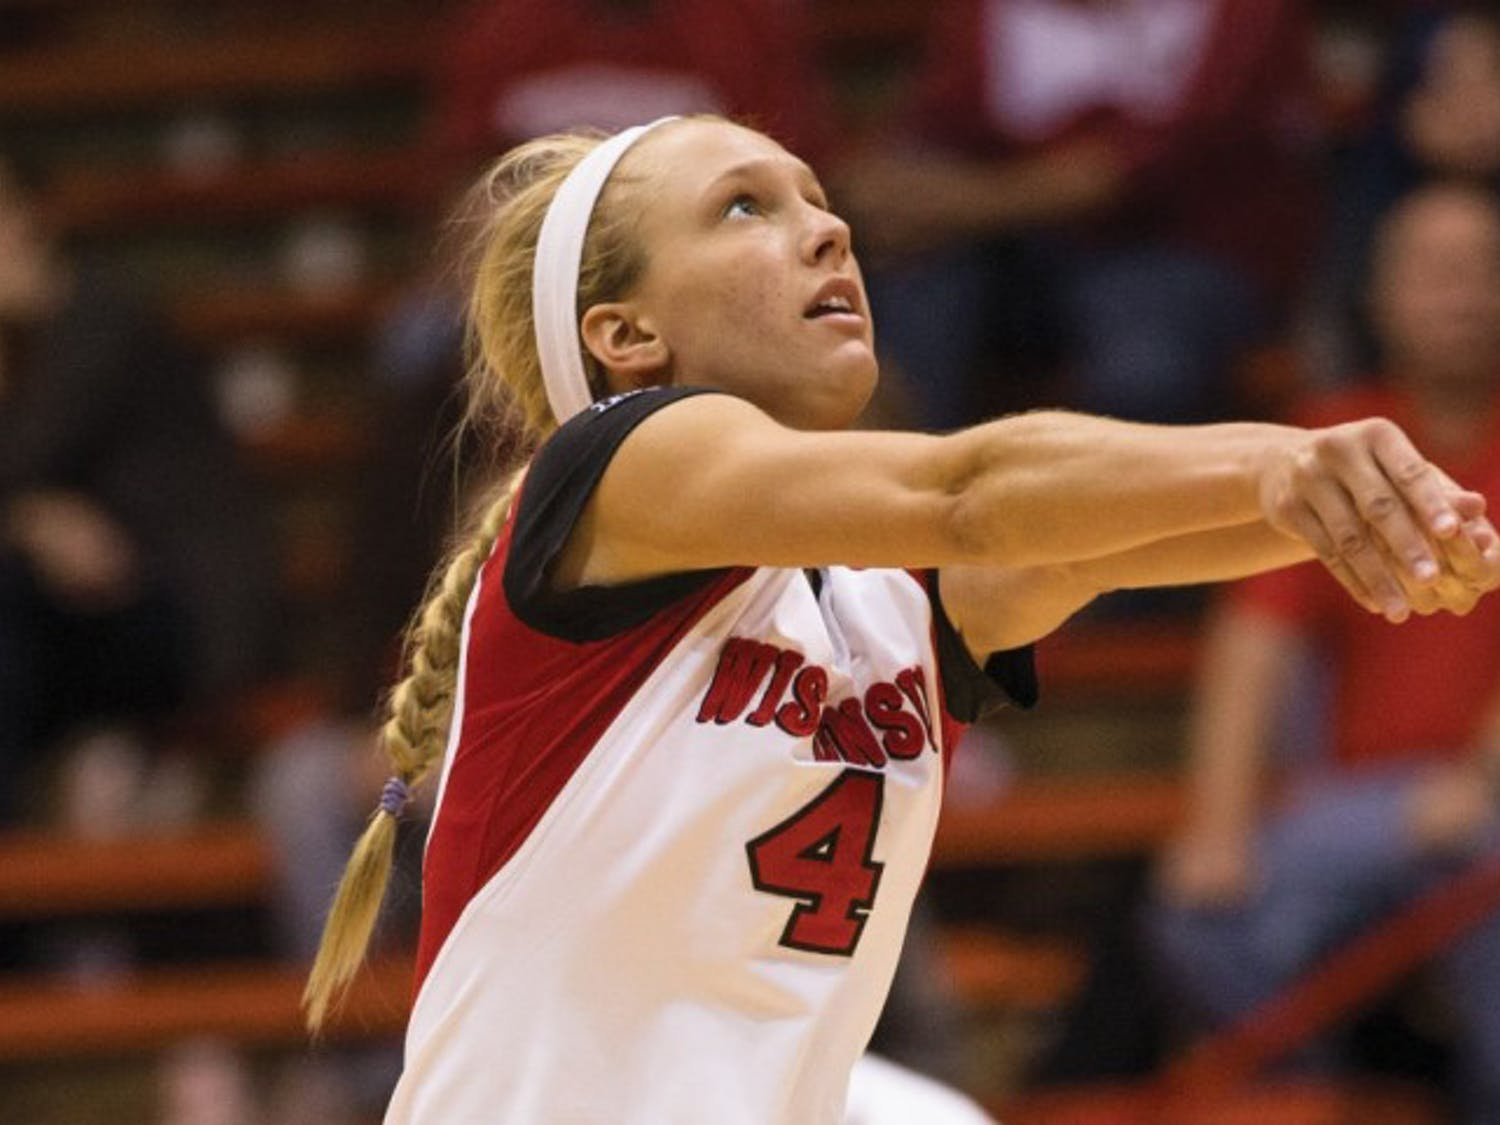 Kelli Bates was pivotal for the Badgers win over the Buckeyes.